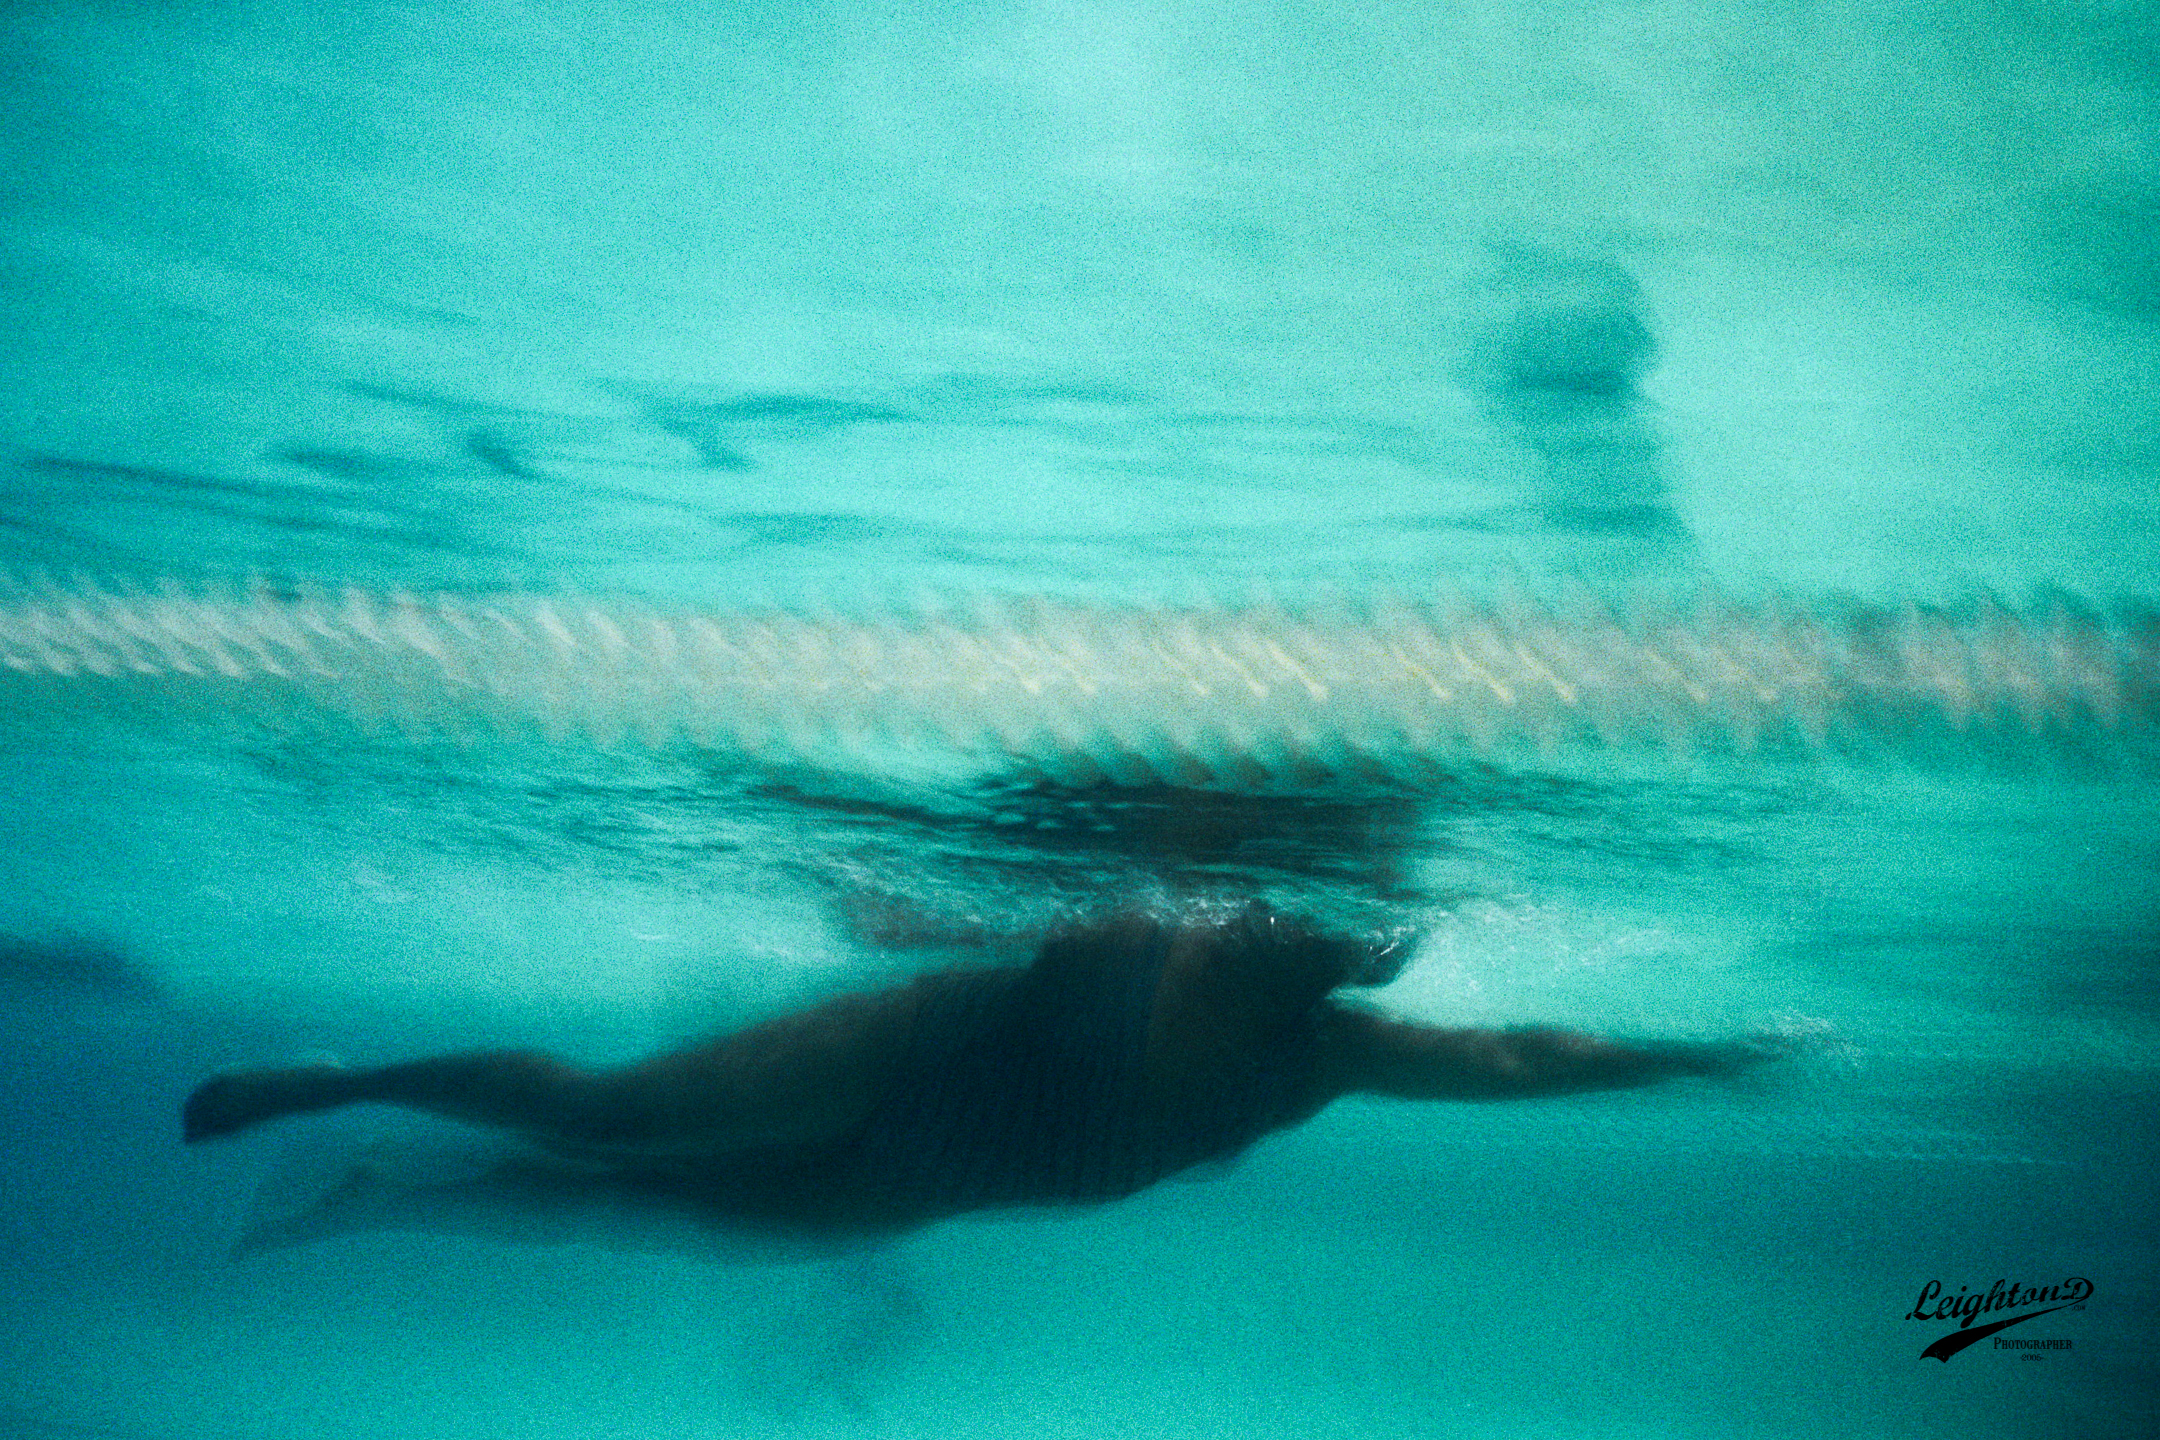 Nikonos V; 28mm; Kodak MAX 400, (assumed) 1/60s - aperture priority of f/8